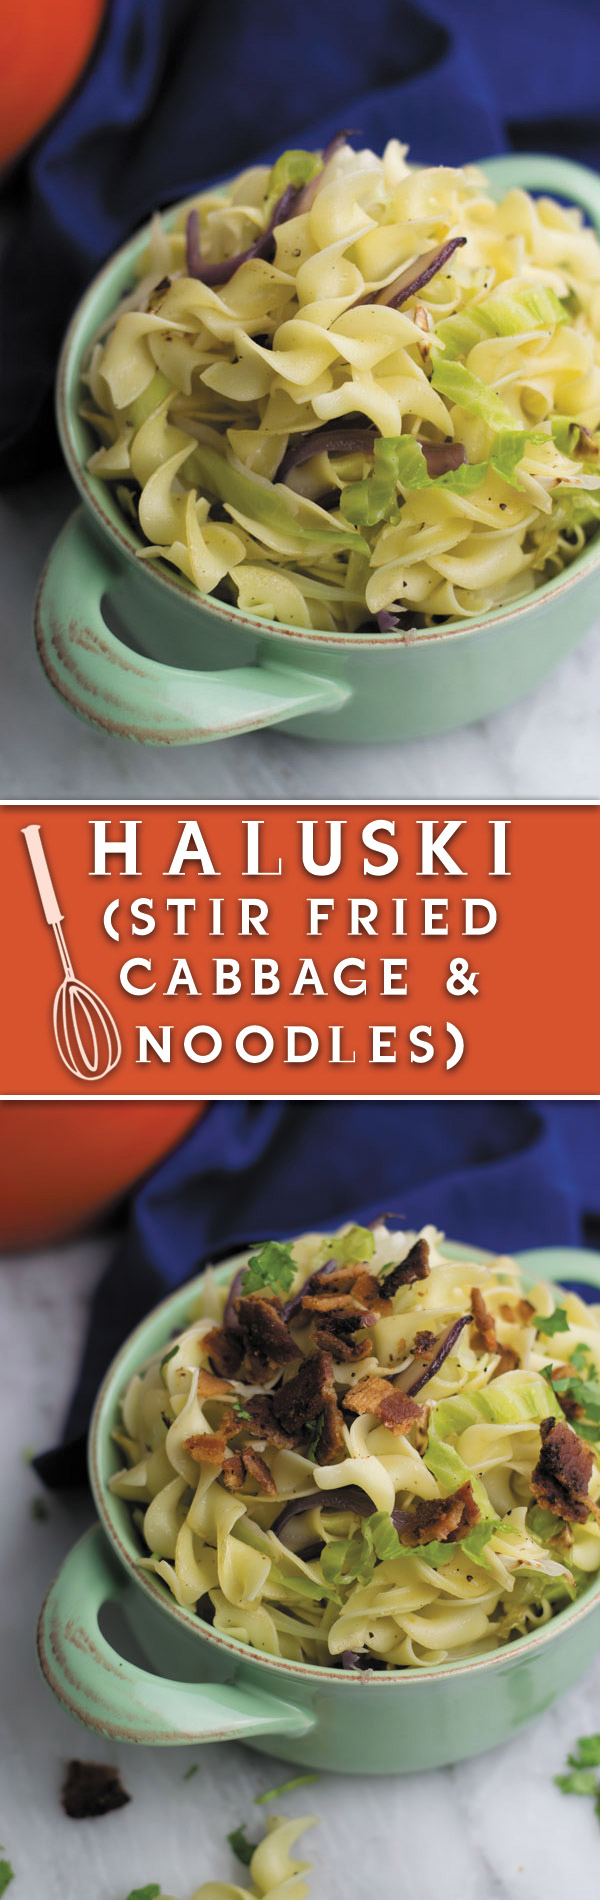 Haluski-Stir-Fried-Cabbage-&-Noodles-LongPin